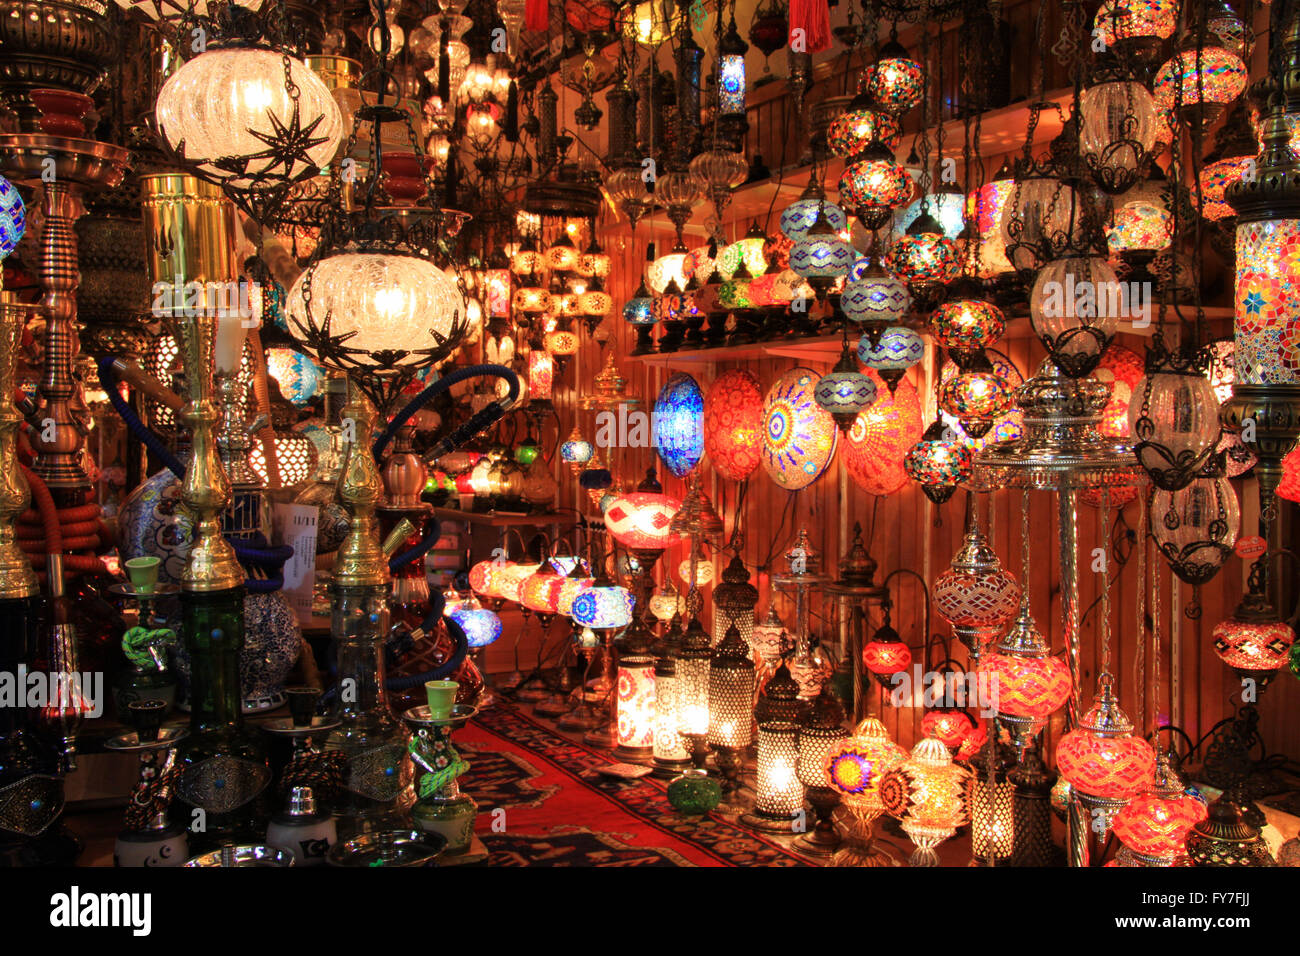 Turkish Lamps Shop In The Grand Bazaar, Istanbul   Stock Image